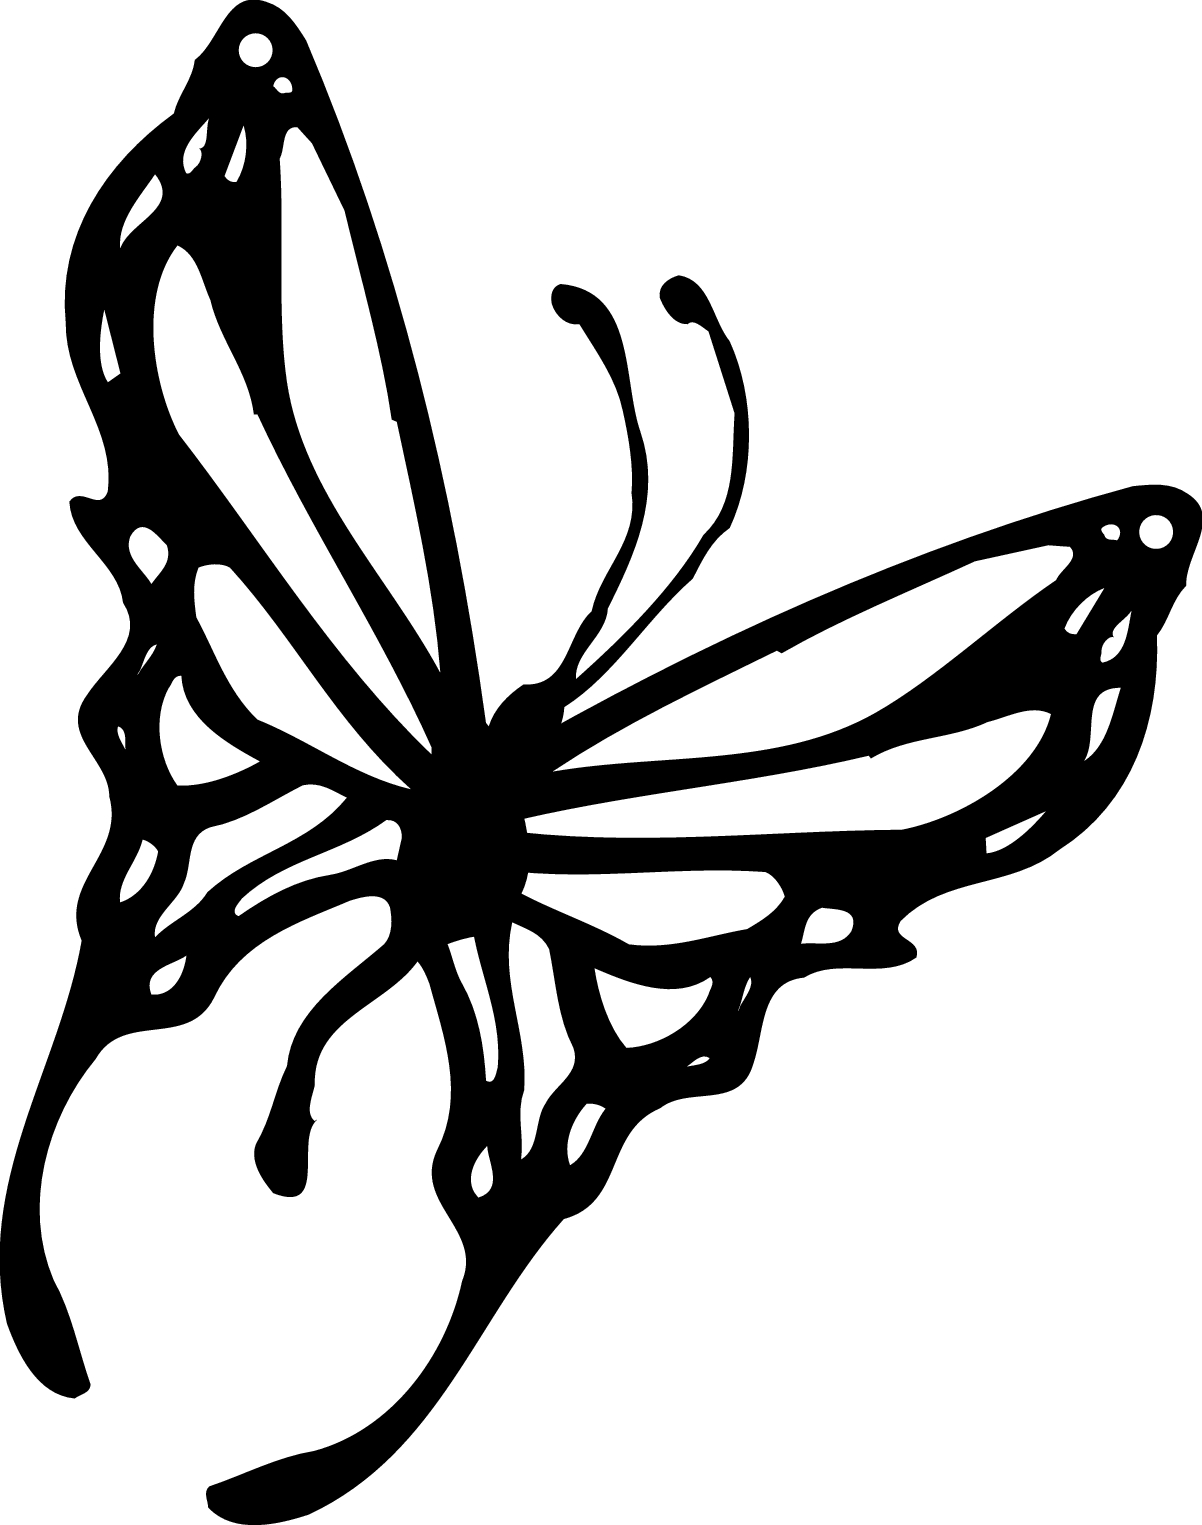 hight resolution of 1202x1525 15 monarch butterfly pictures black and white compilation black